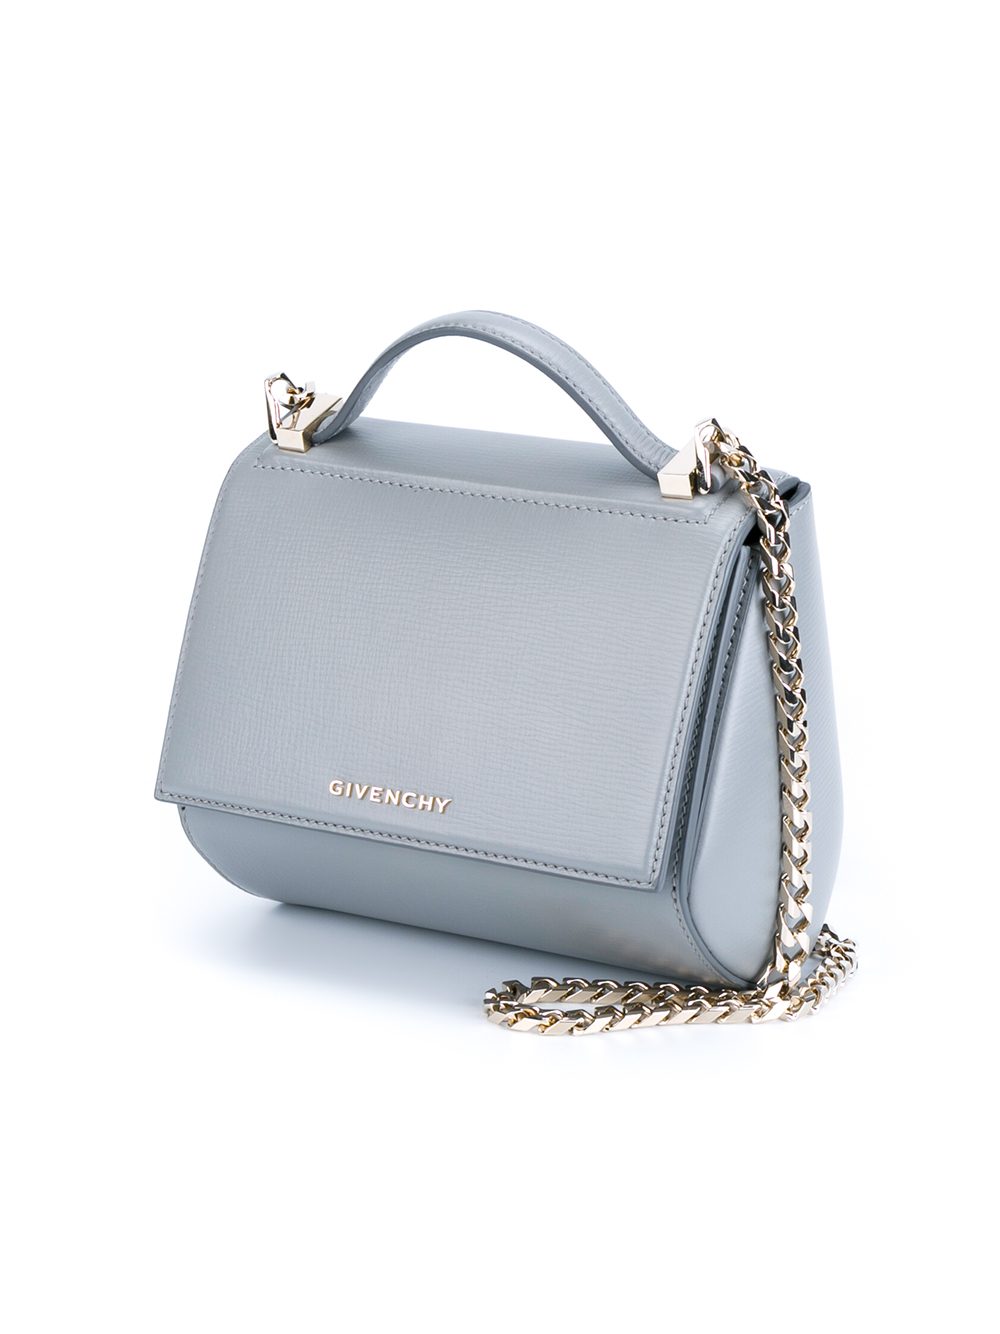 Lyst - Givenchy Leather Pandora Box Handbag in Gray 467d2fe17586a